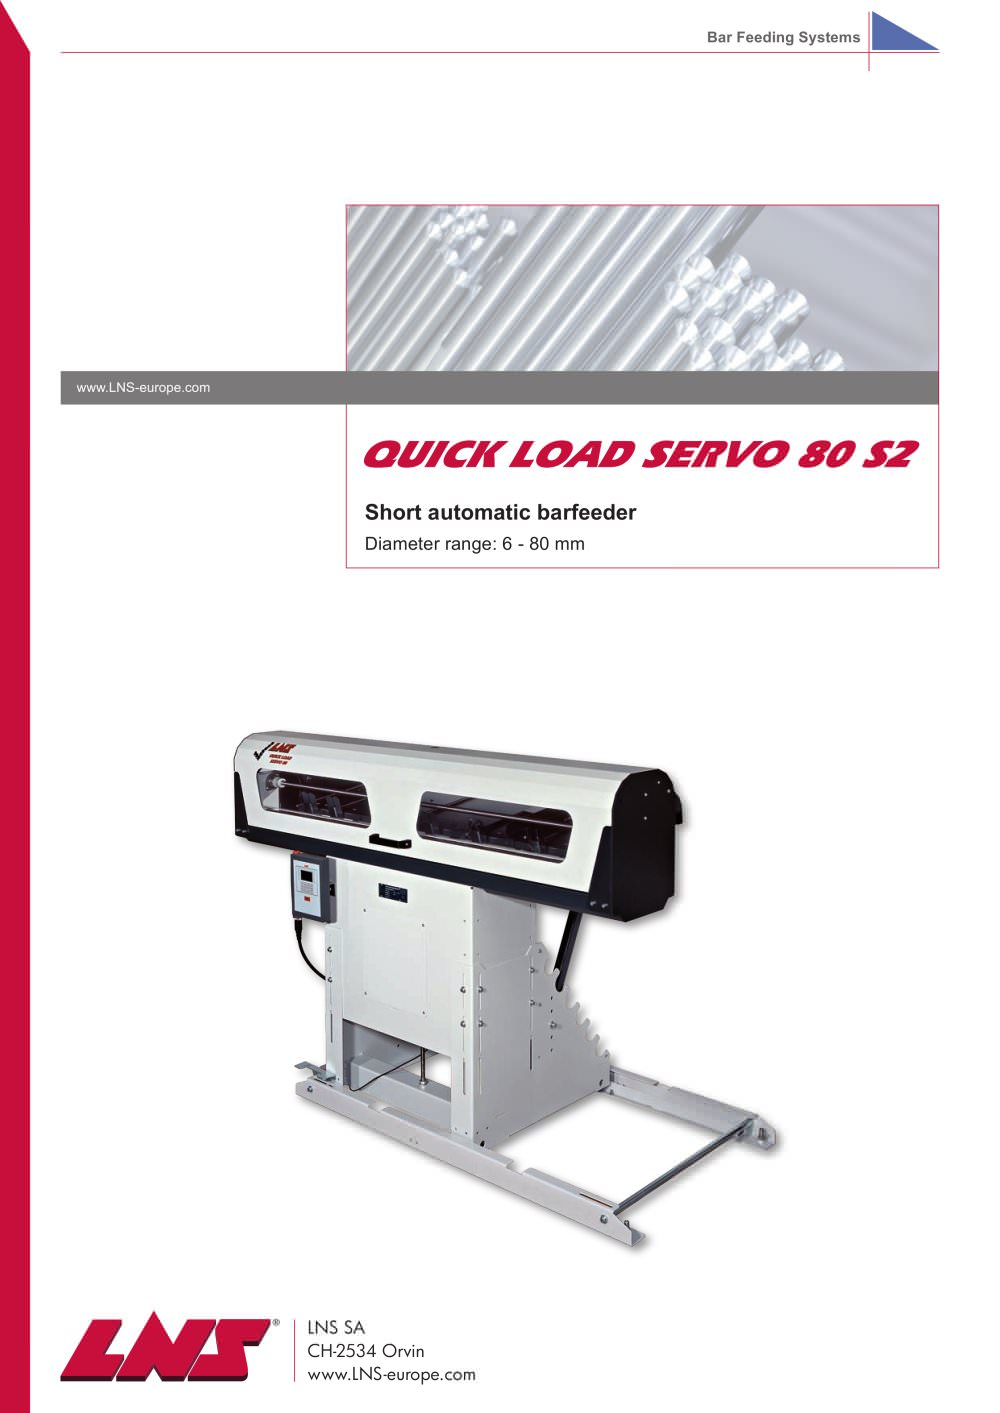 Short automatic barfeeders > Quick Load Servo 80 S2 - 1 / 4 Pages